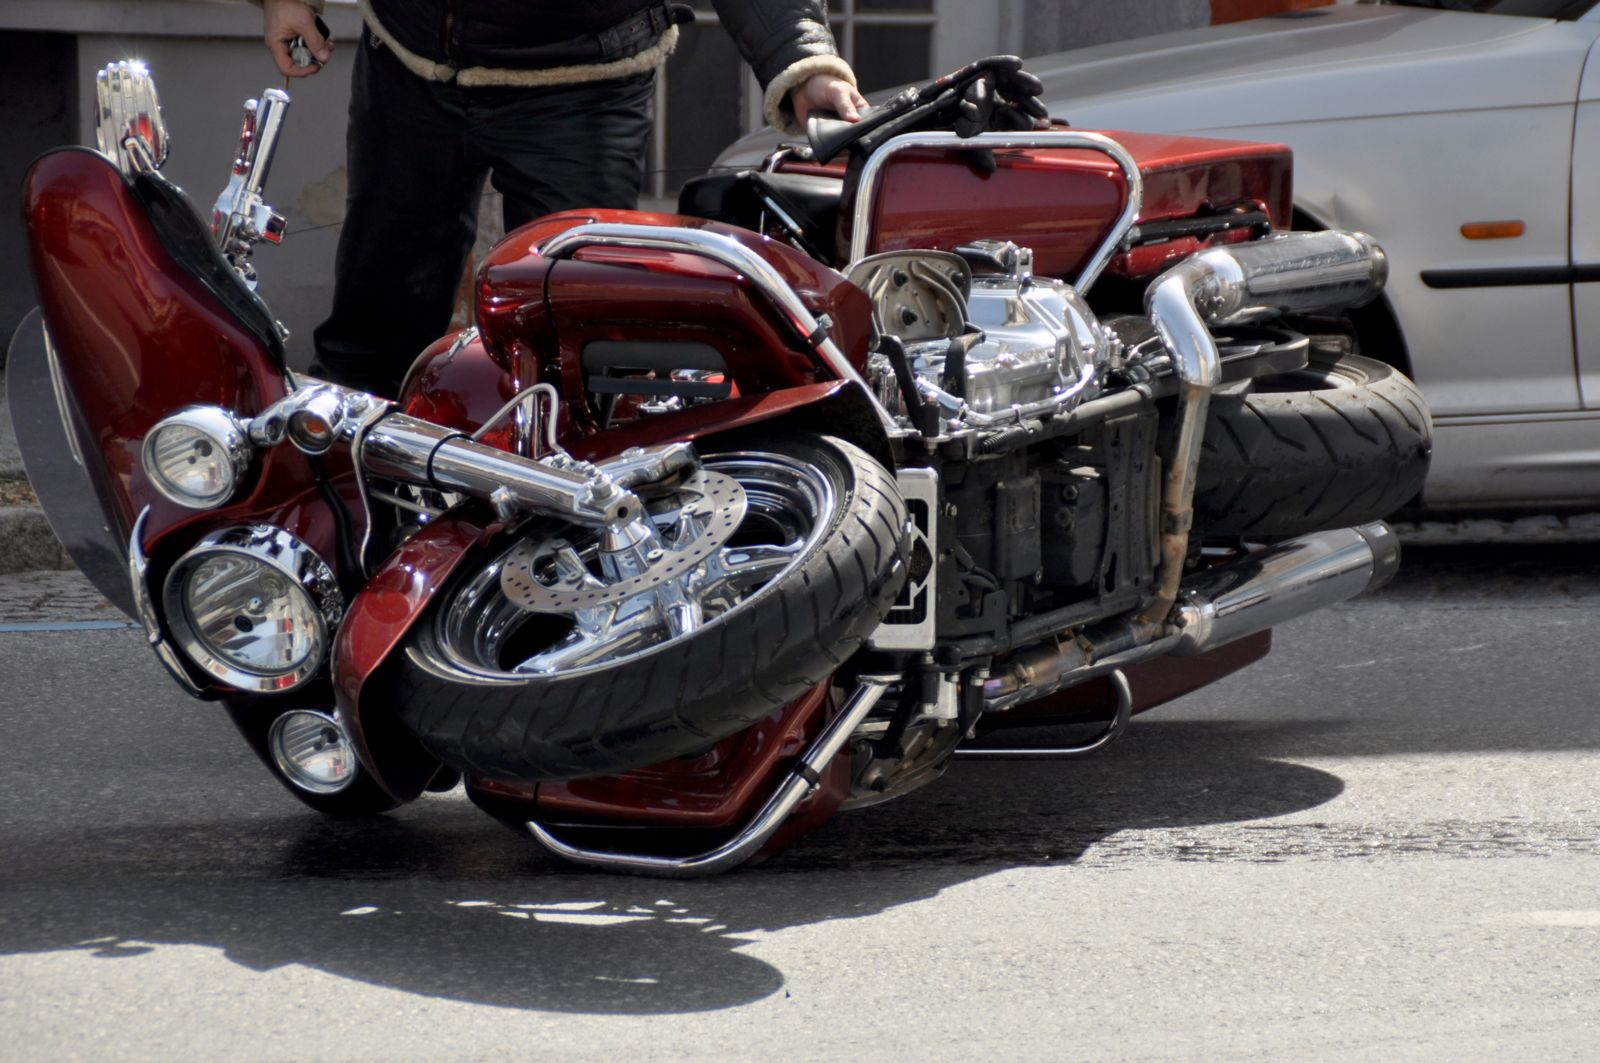 Can I file a motorcycle accident claim with no insurance